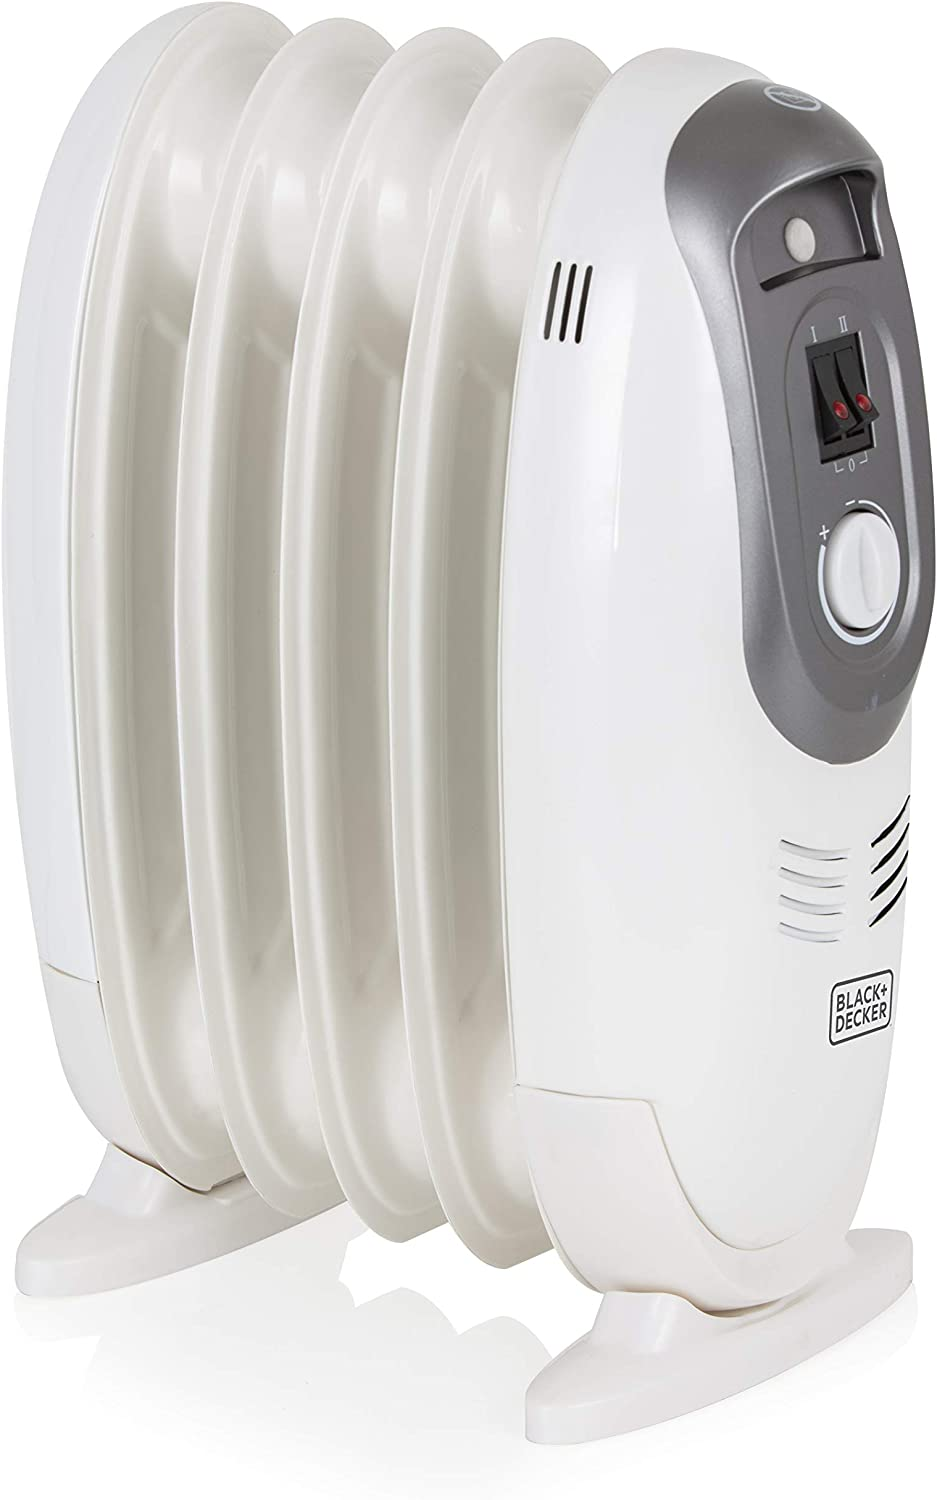 BLACK+DECKER BXRA43006GB Compact Oil Filled Radiator with 2 Heat Setting and Adjustable Thermostat, 600 W, White